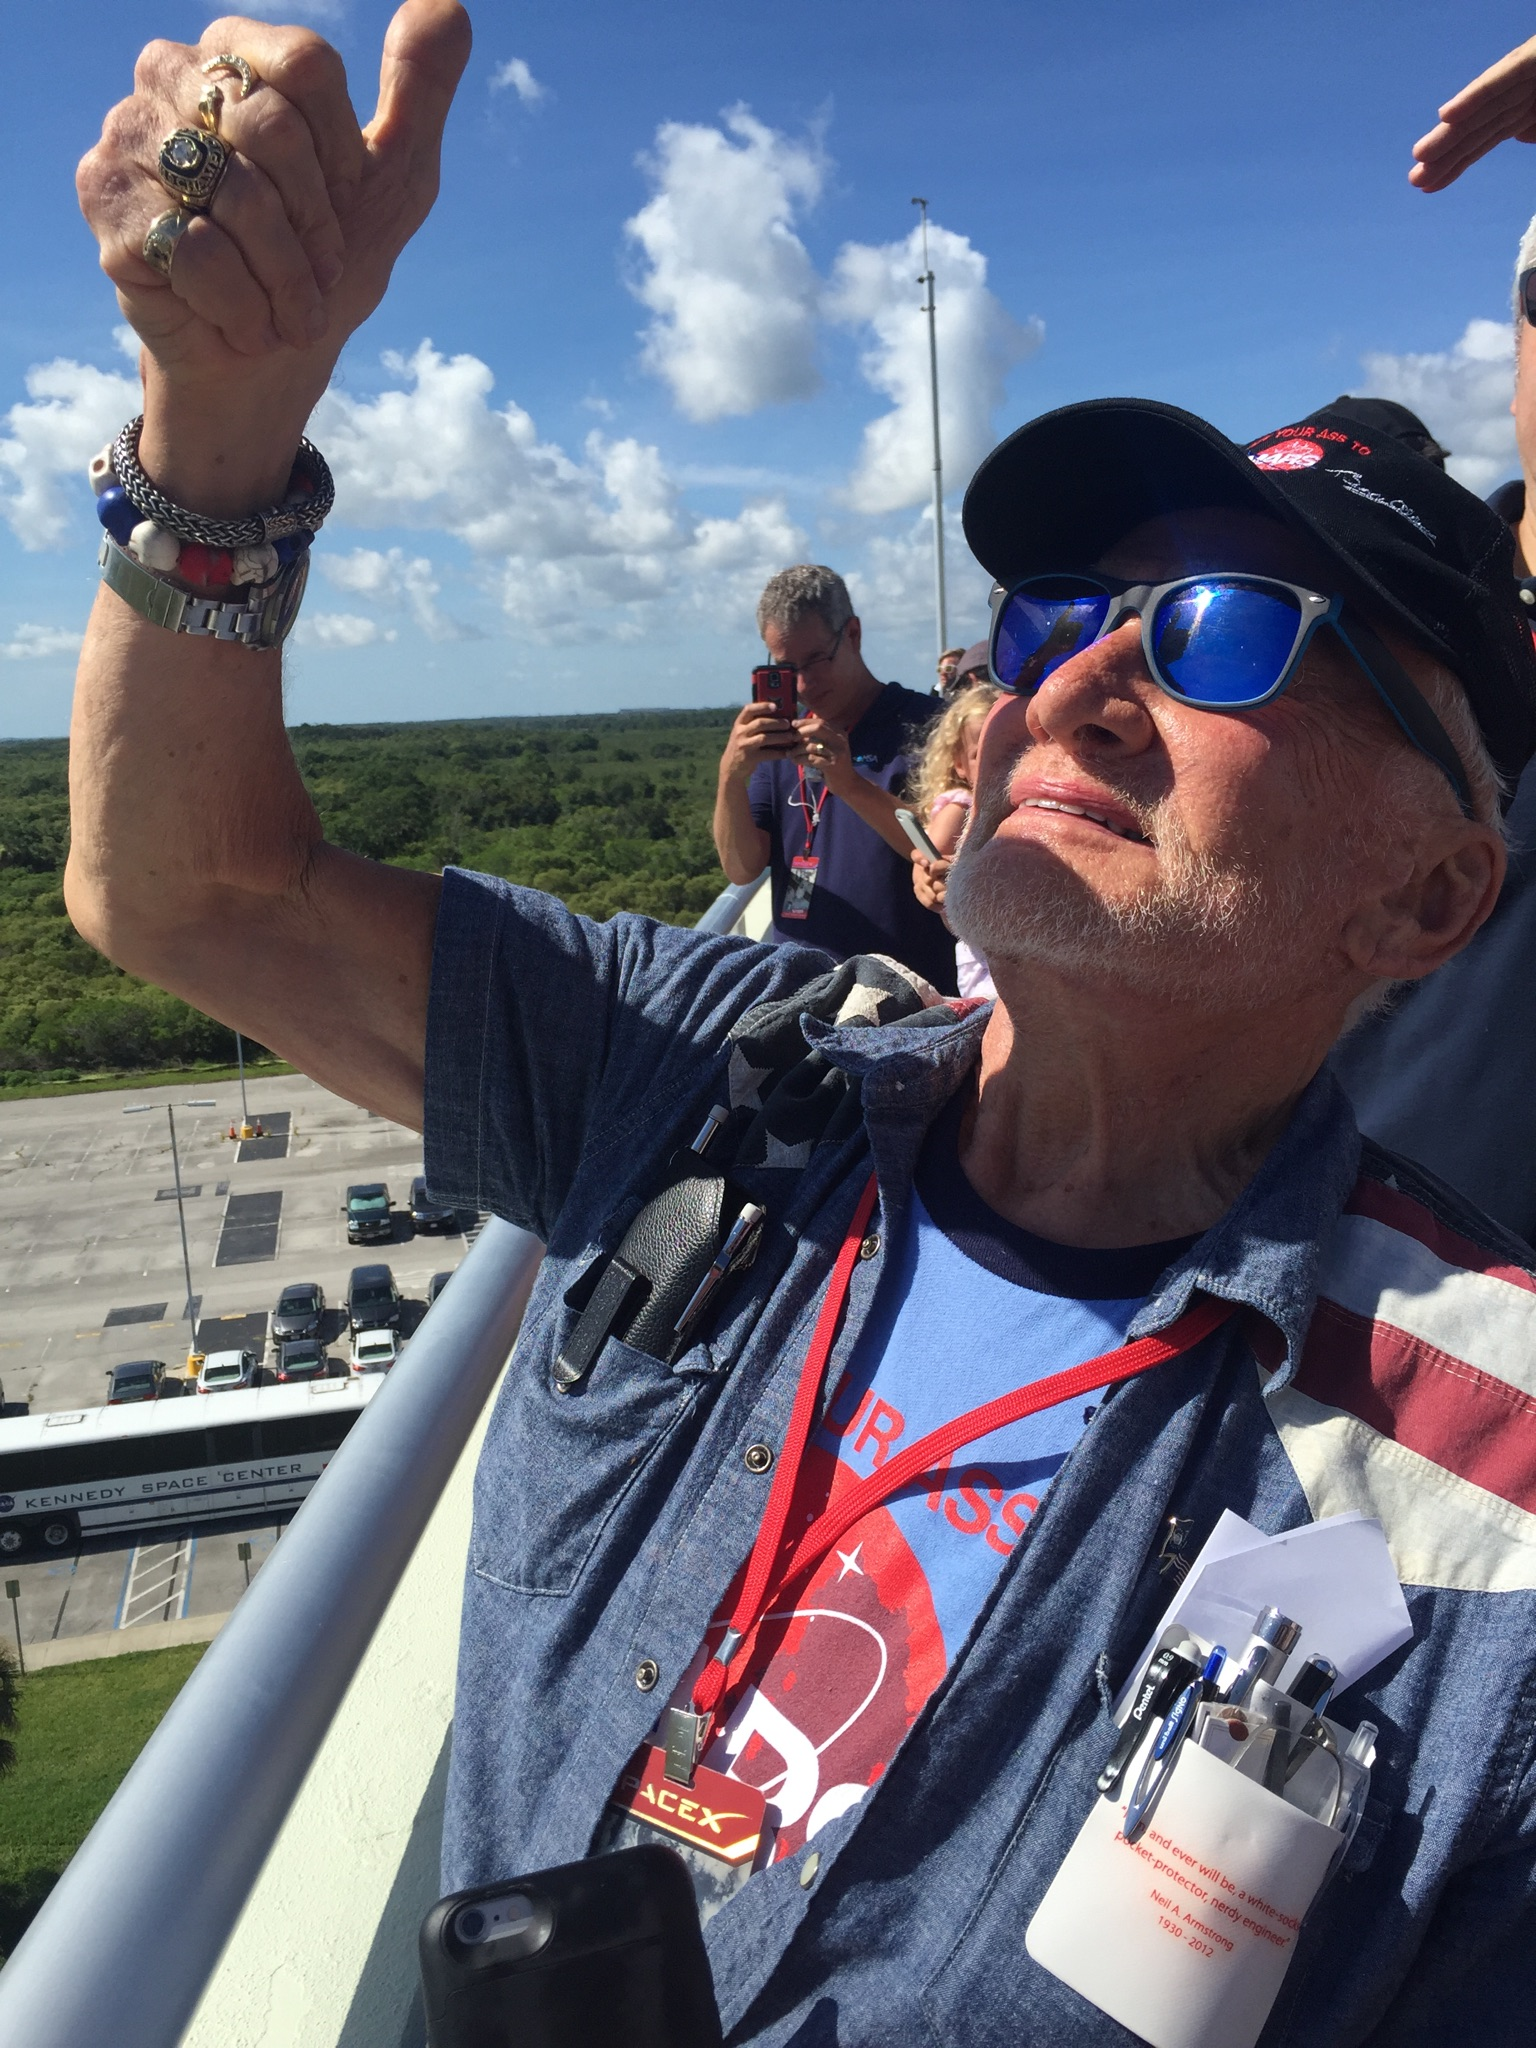 Dr. Buzz Aldrin watches the Spacex Falcon 9 rocket launch on June 28, 2015  at the Kennedy Space Center in Florida.